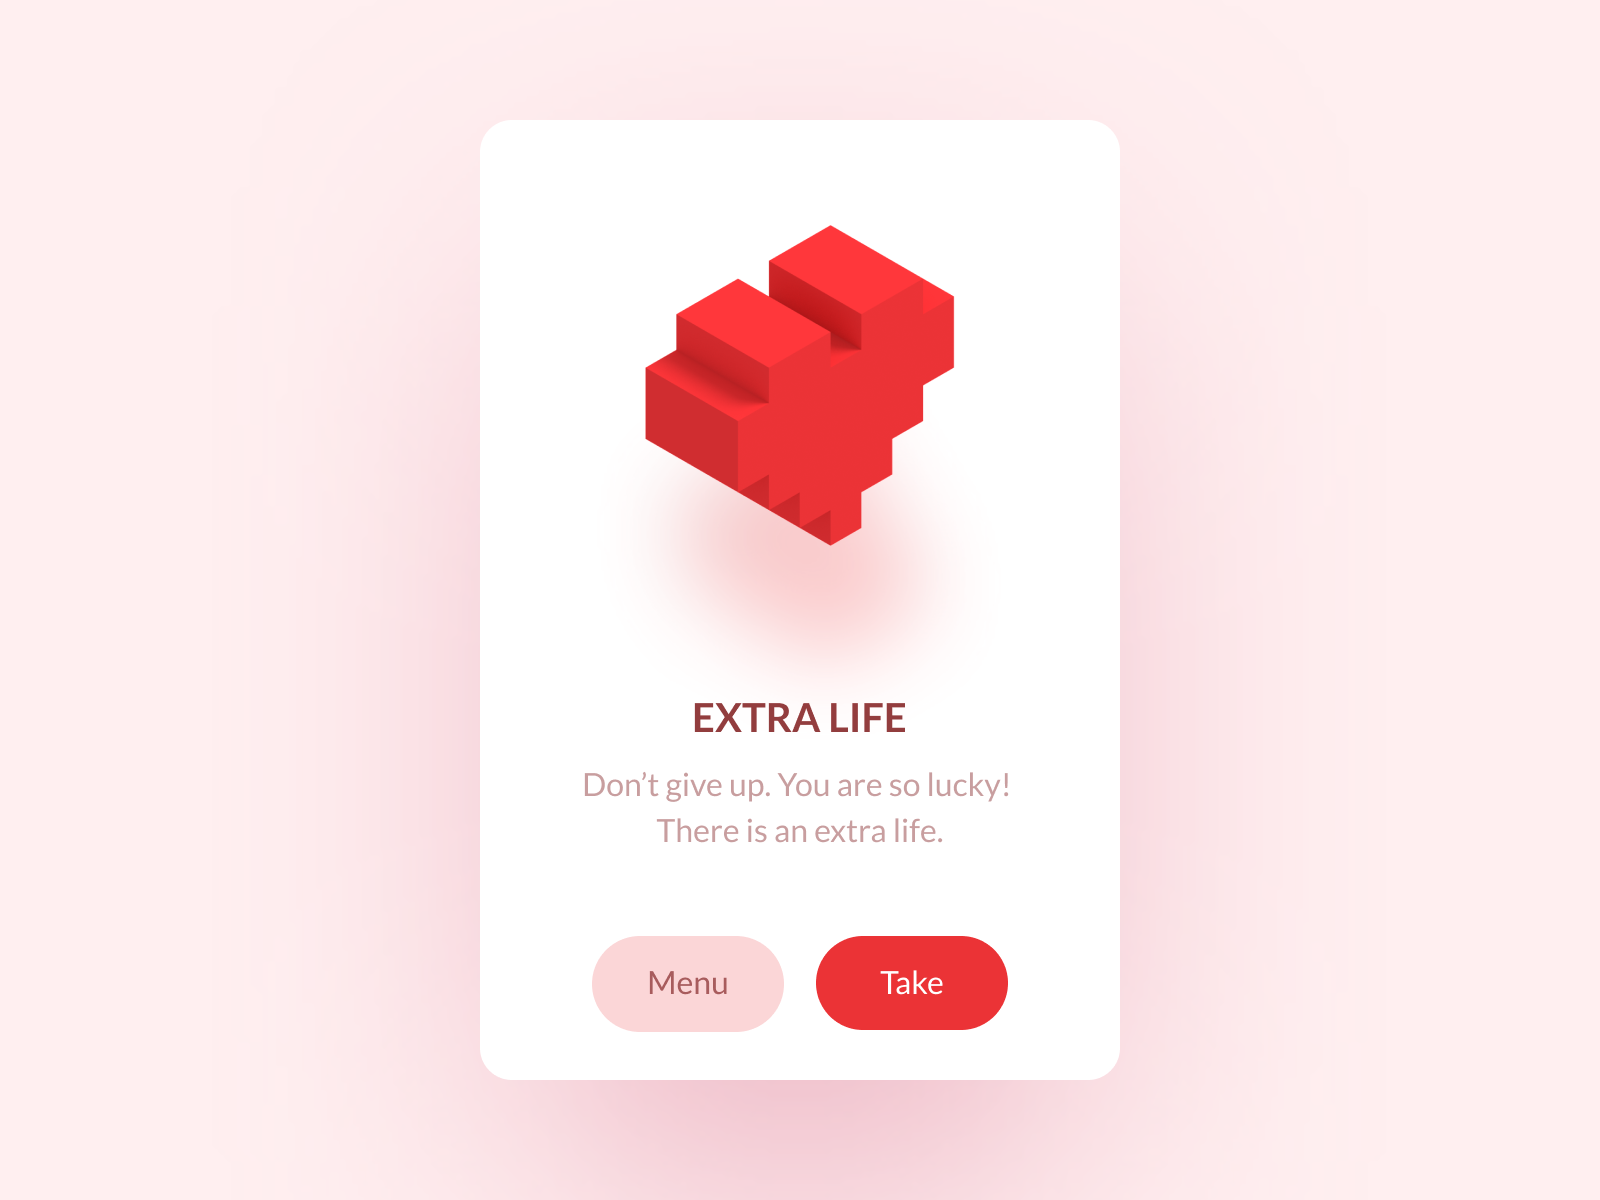 Extra life popup by Oleg Frolov